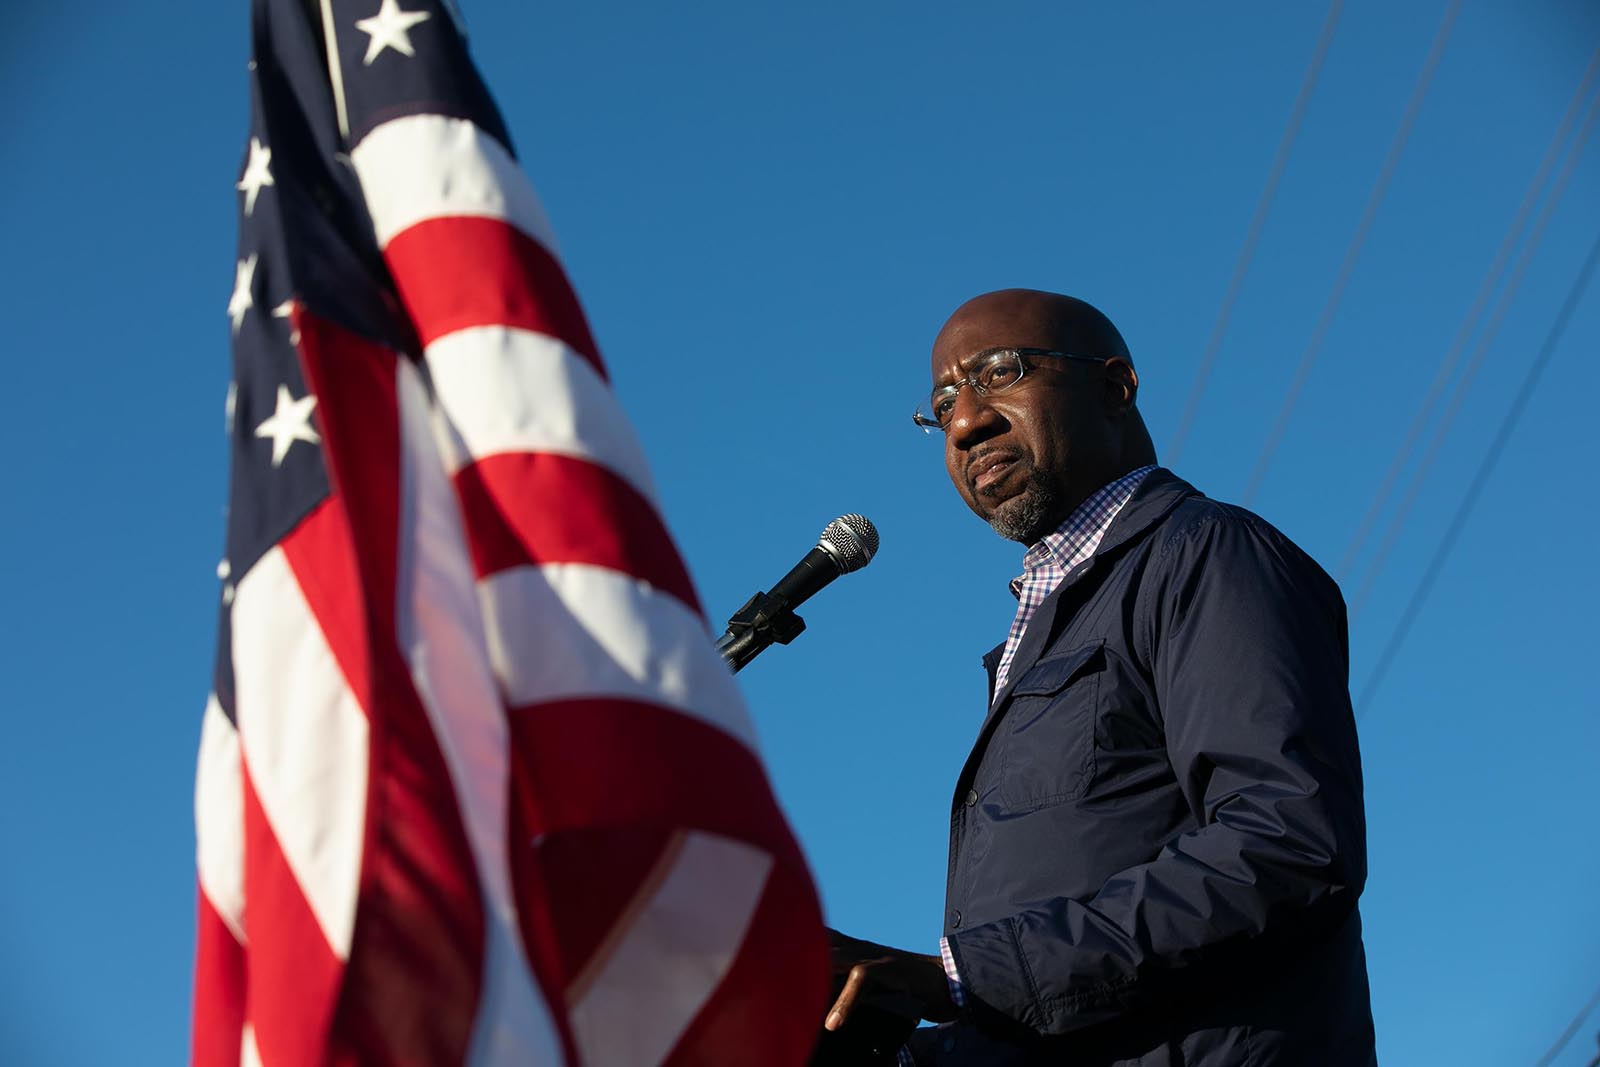 Senate candidate Raphael Warnock of Georgia speaks to supporters during a rally on November 15 in Marietta, Georgia.